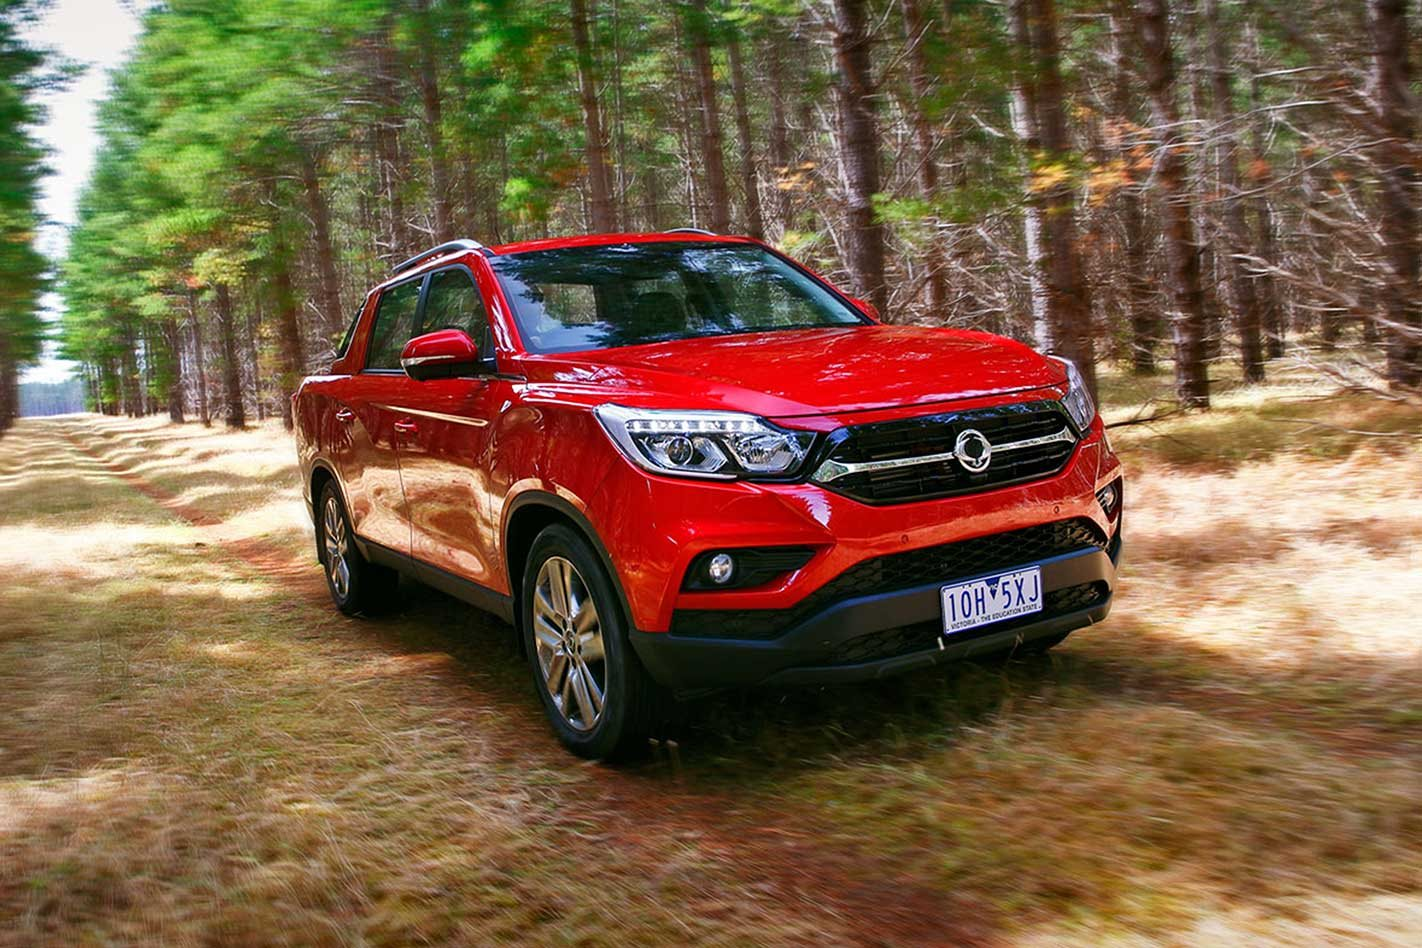 Mazda 3 Wheels >> 2019 Ssangyong Musso dual-cab ute 4x4 review